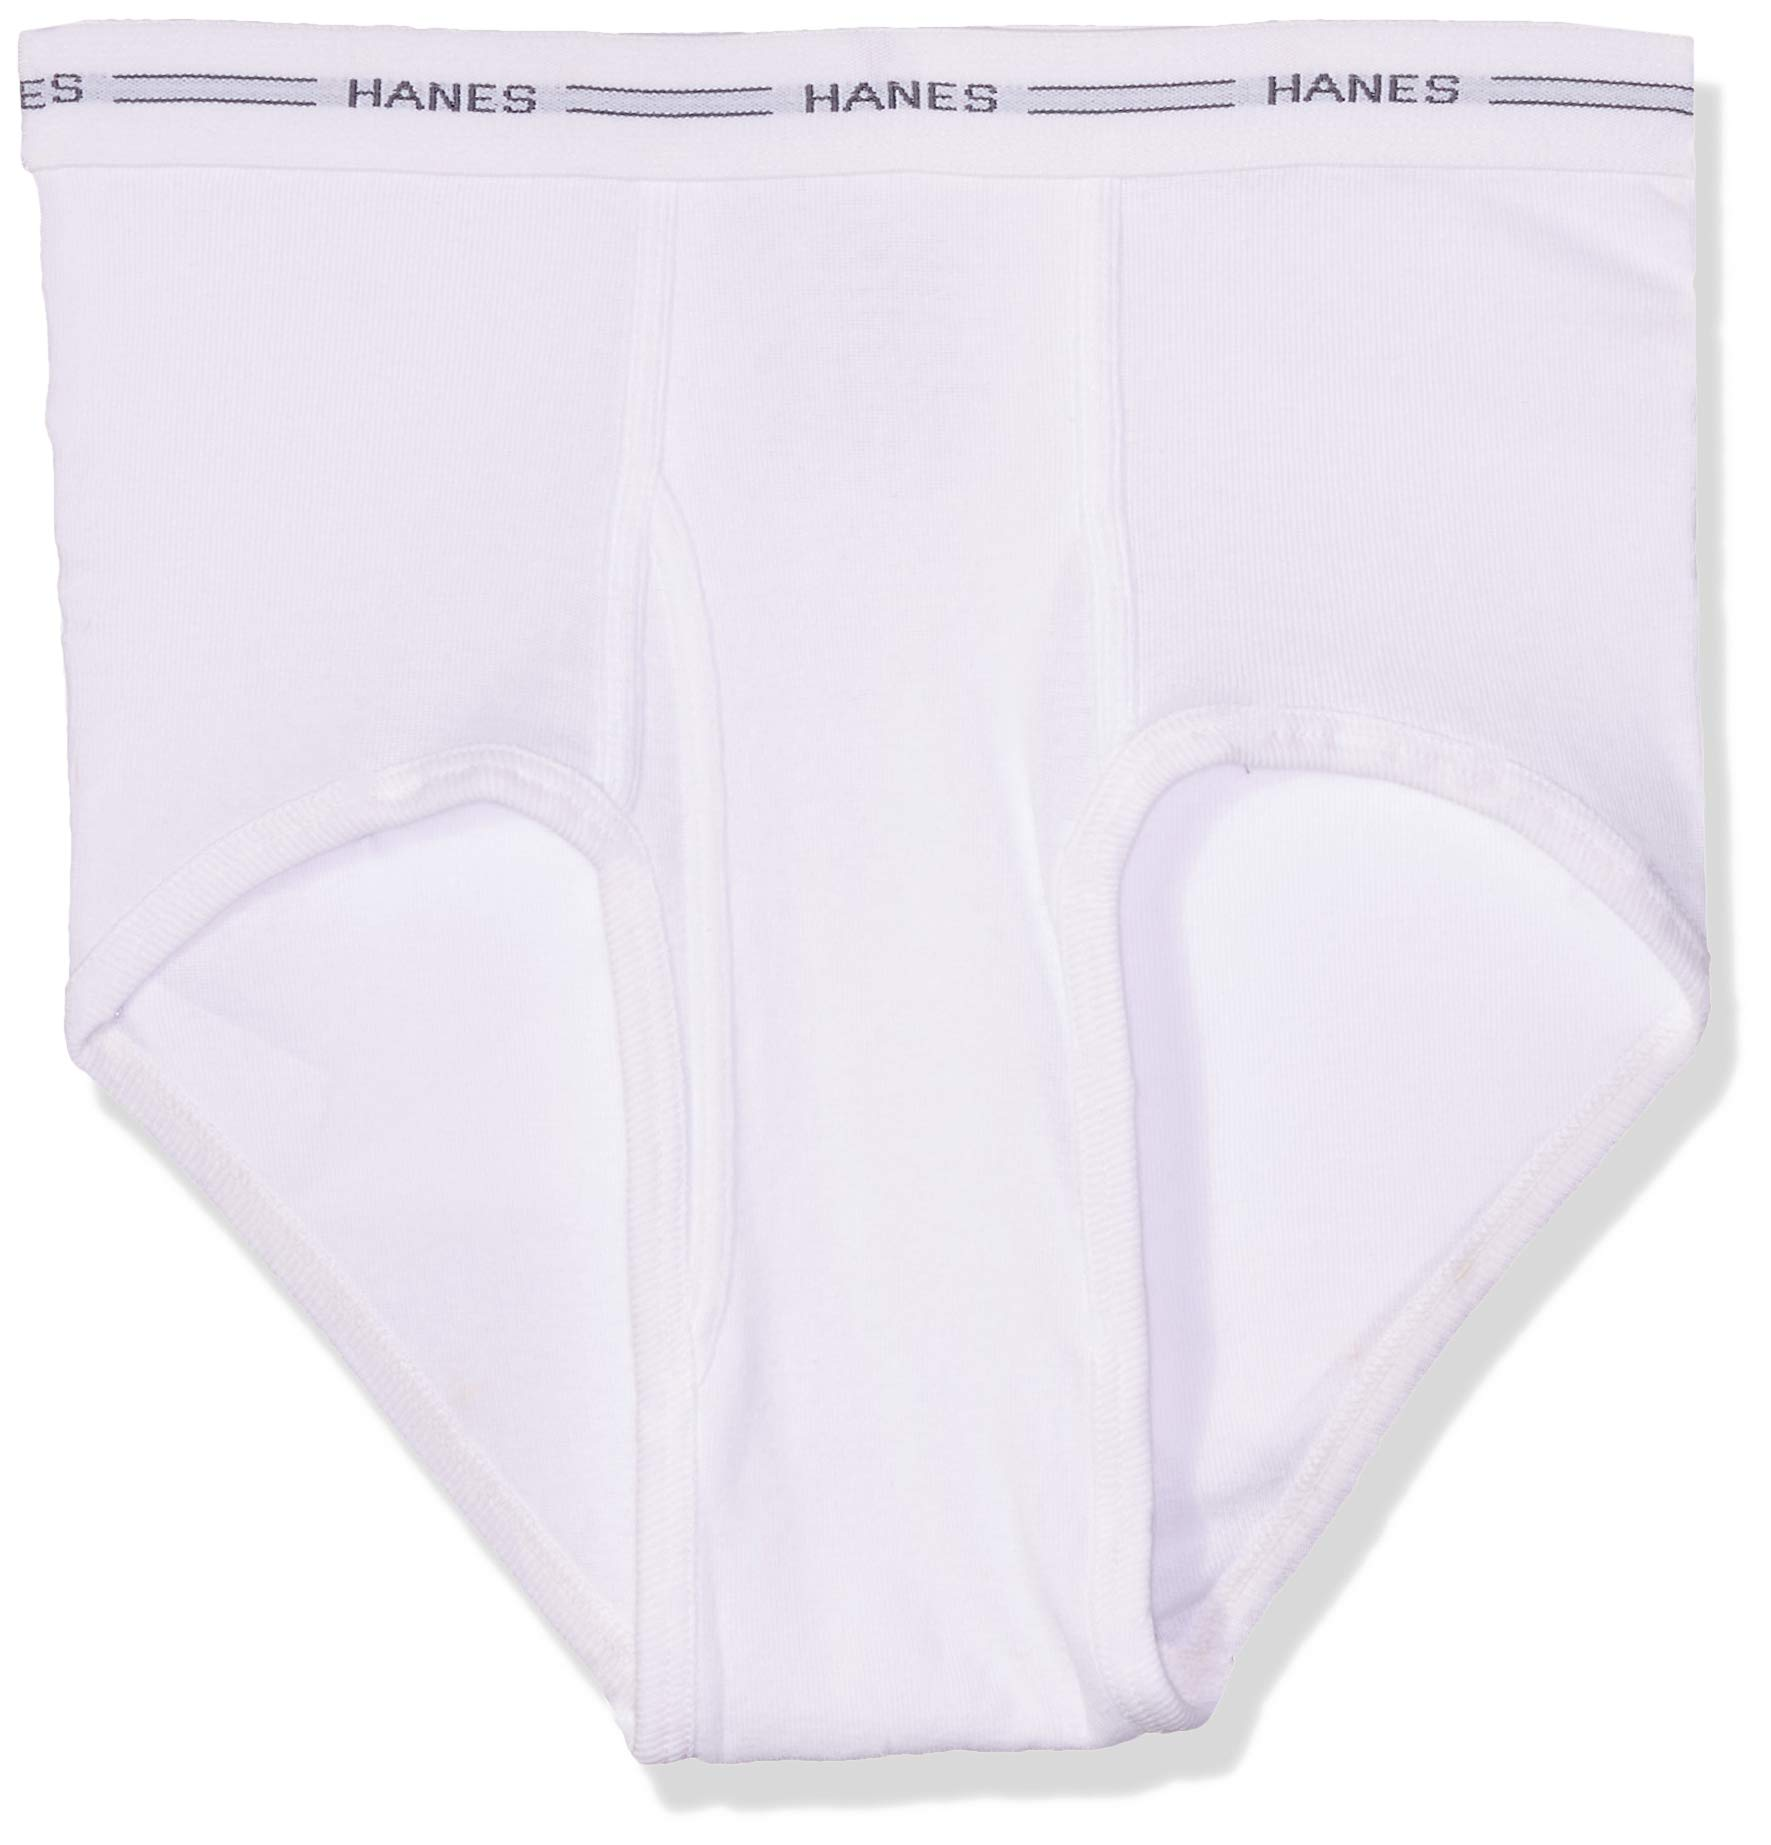 Hanes Men's Briefs (Pack of 7)